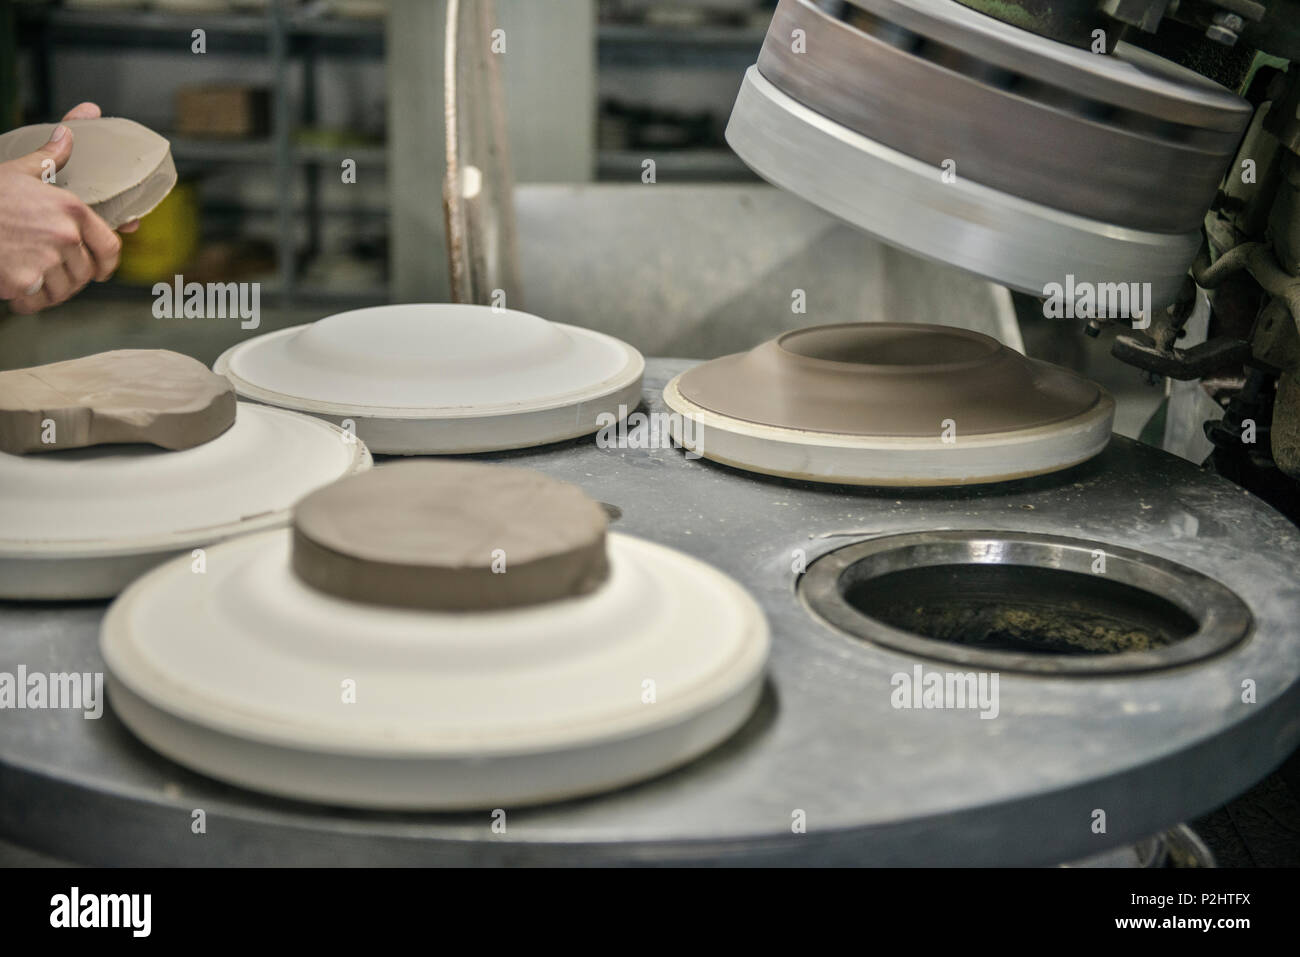 Manufacturing the famous Zeller place settings in the factory, Zell am Harmersbach, Black Forest, Baden-Wuerttemberg, Germany - Stock Image